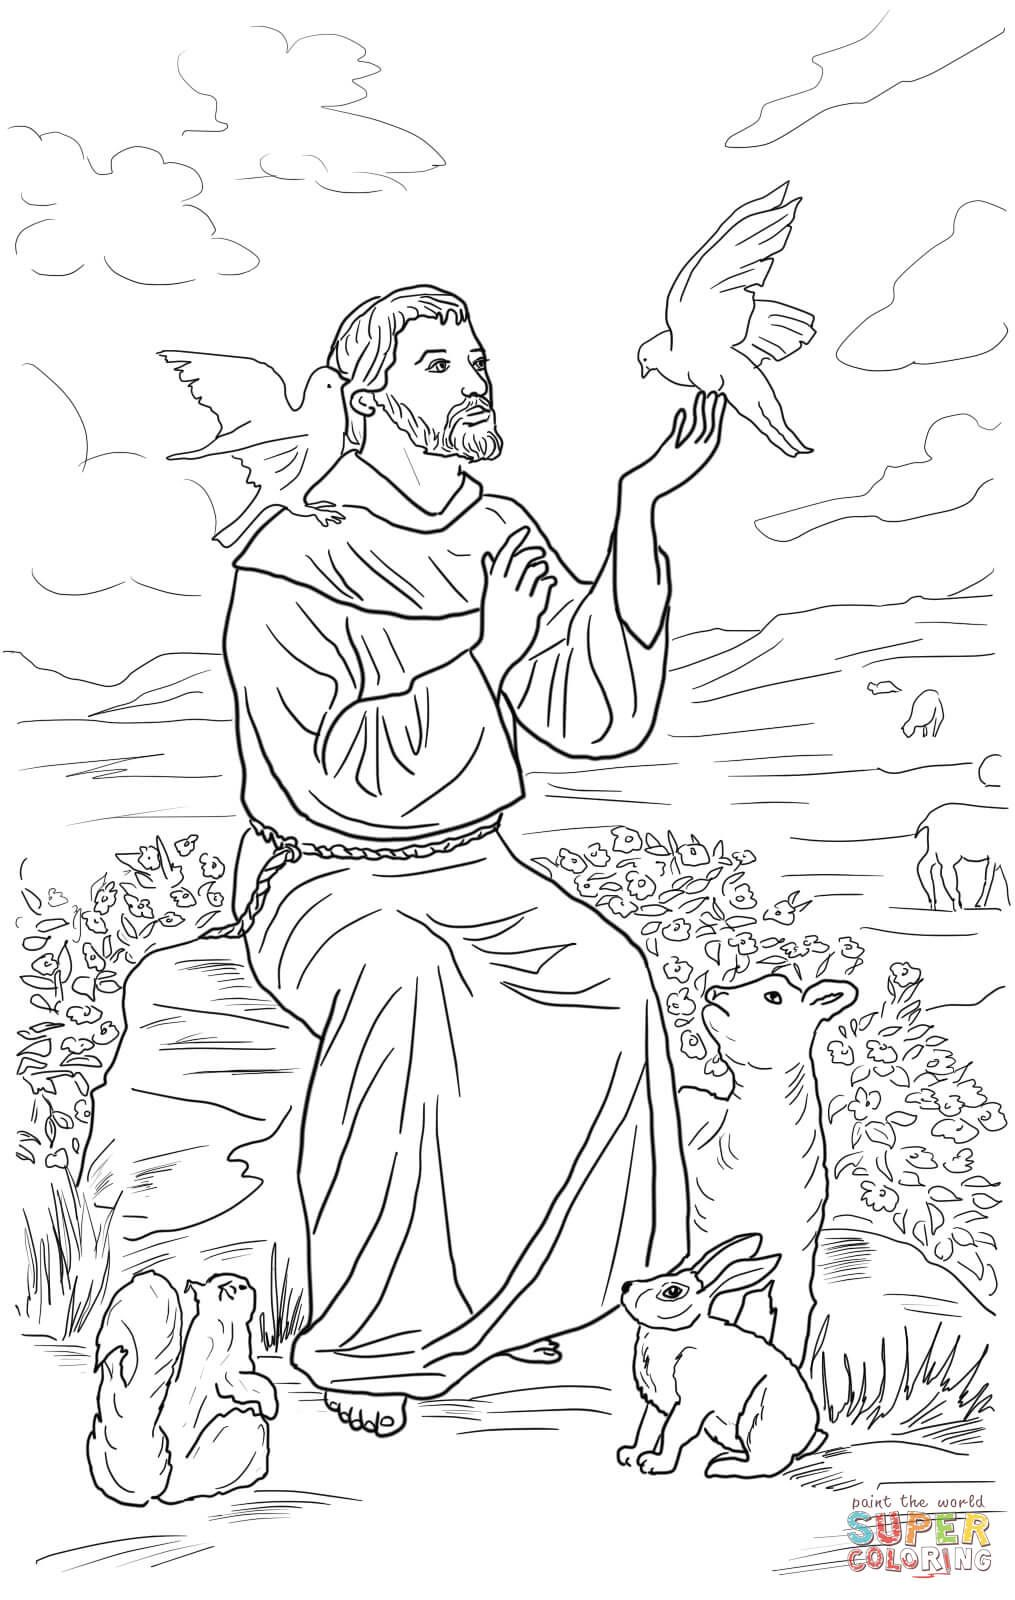 Saint Francis Of Assisi Coloring Page From Saints Category  Select